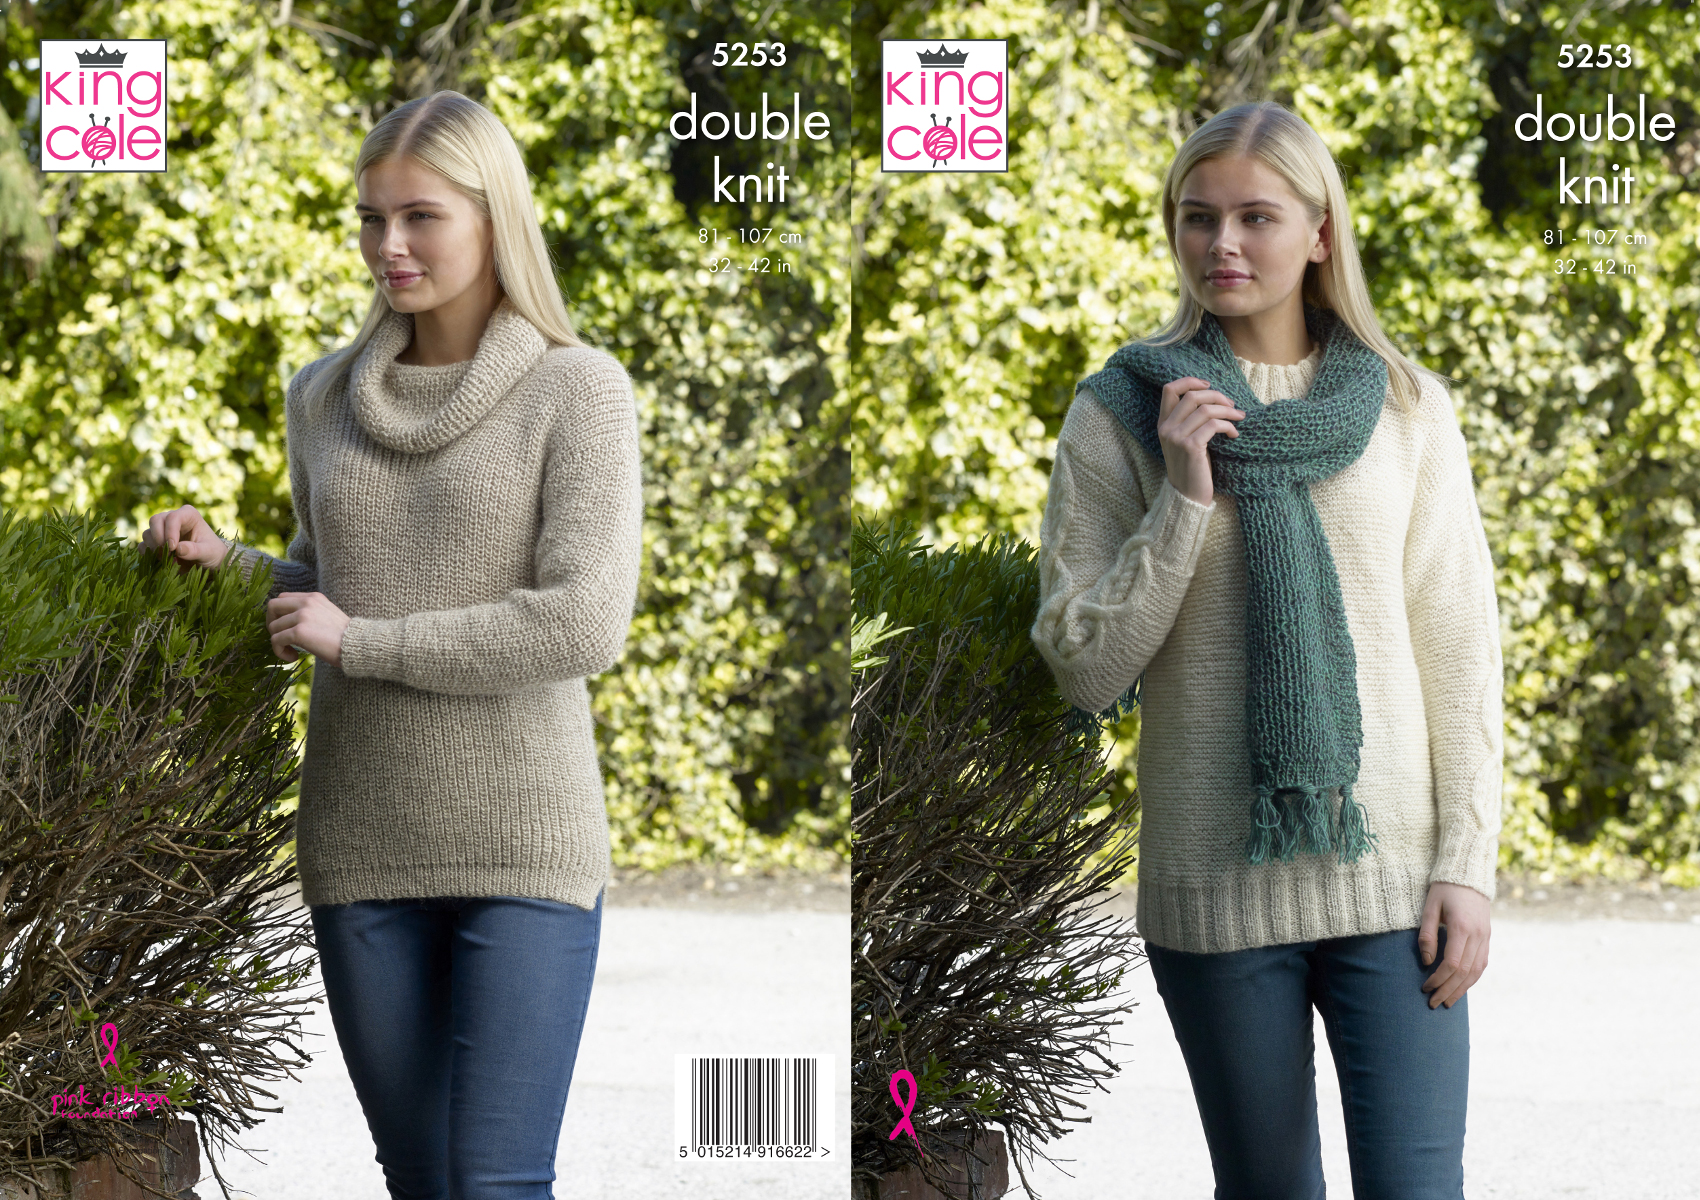 48d3ba3da4e81 King Cole Ladies Double Knitting Pattern Cabled or Cowl Neck Jumper ...